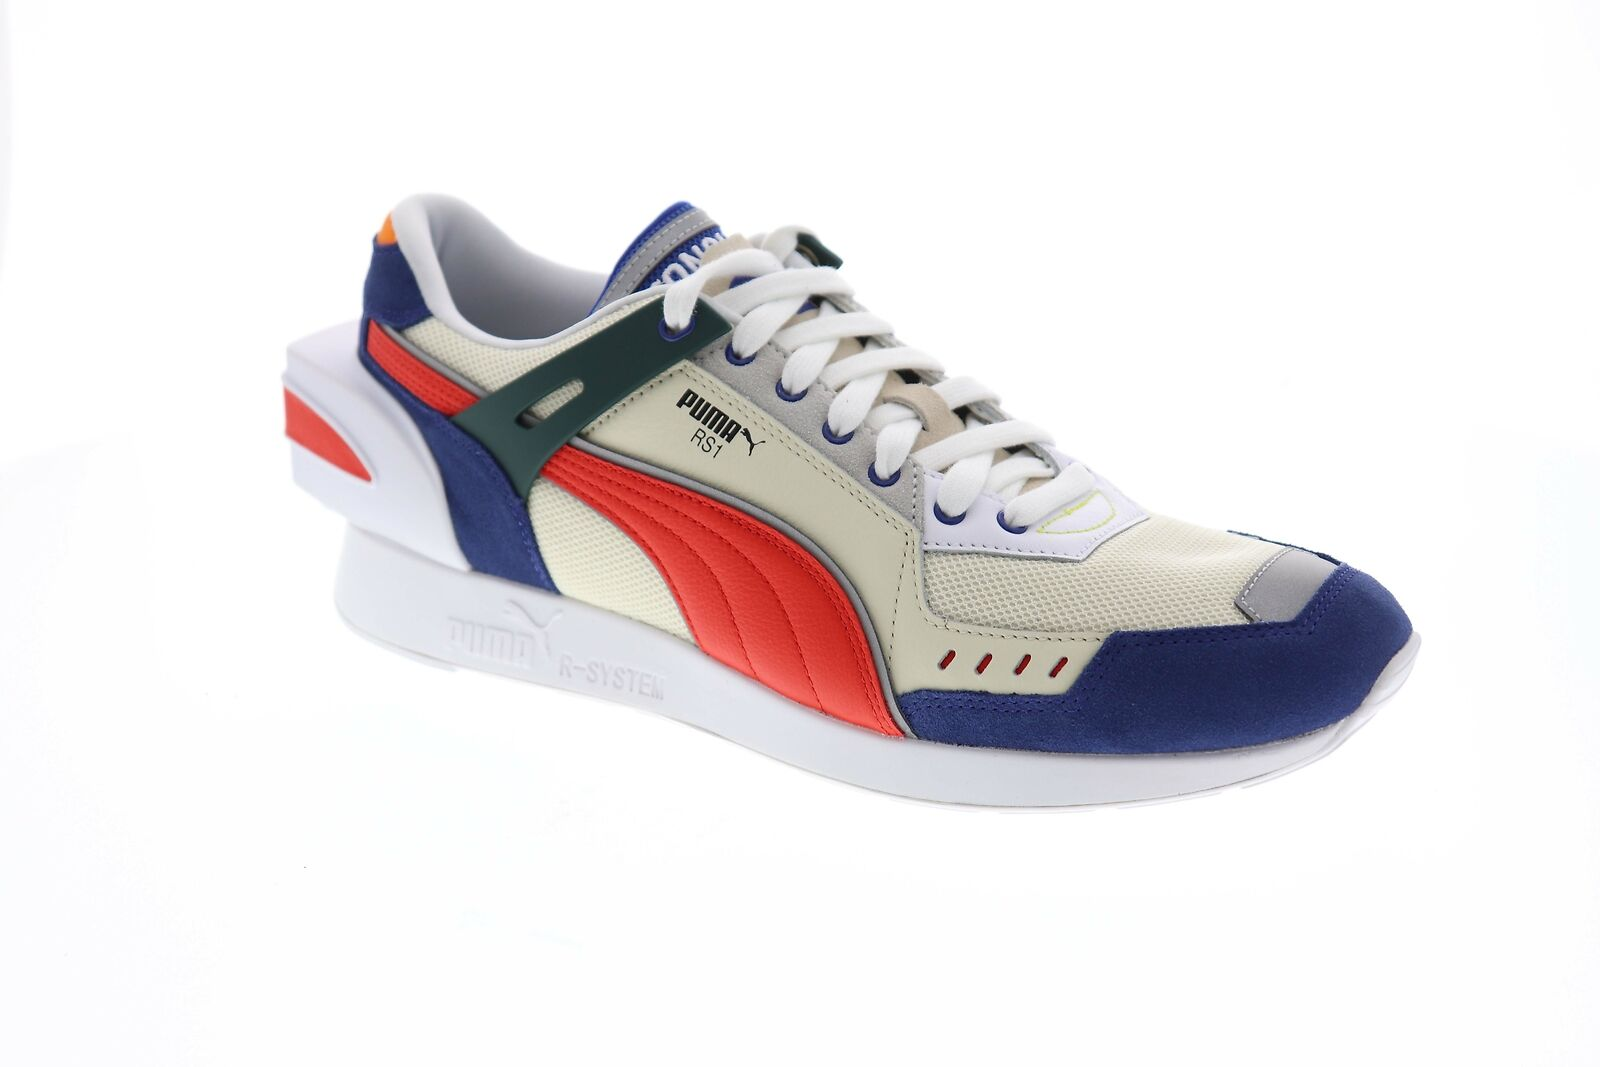 new product adac7 ac7b9 Puma Rs-1 Ader Error 36953701 Mens Beige Tan Blue Casual Low Top Sneakers  Shoes